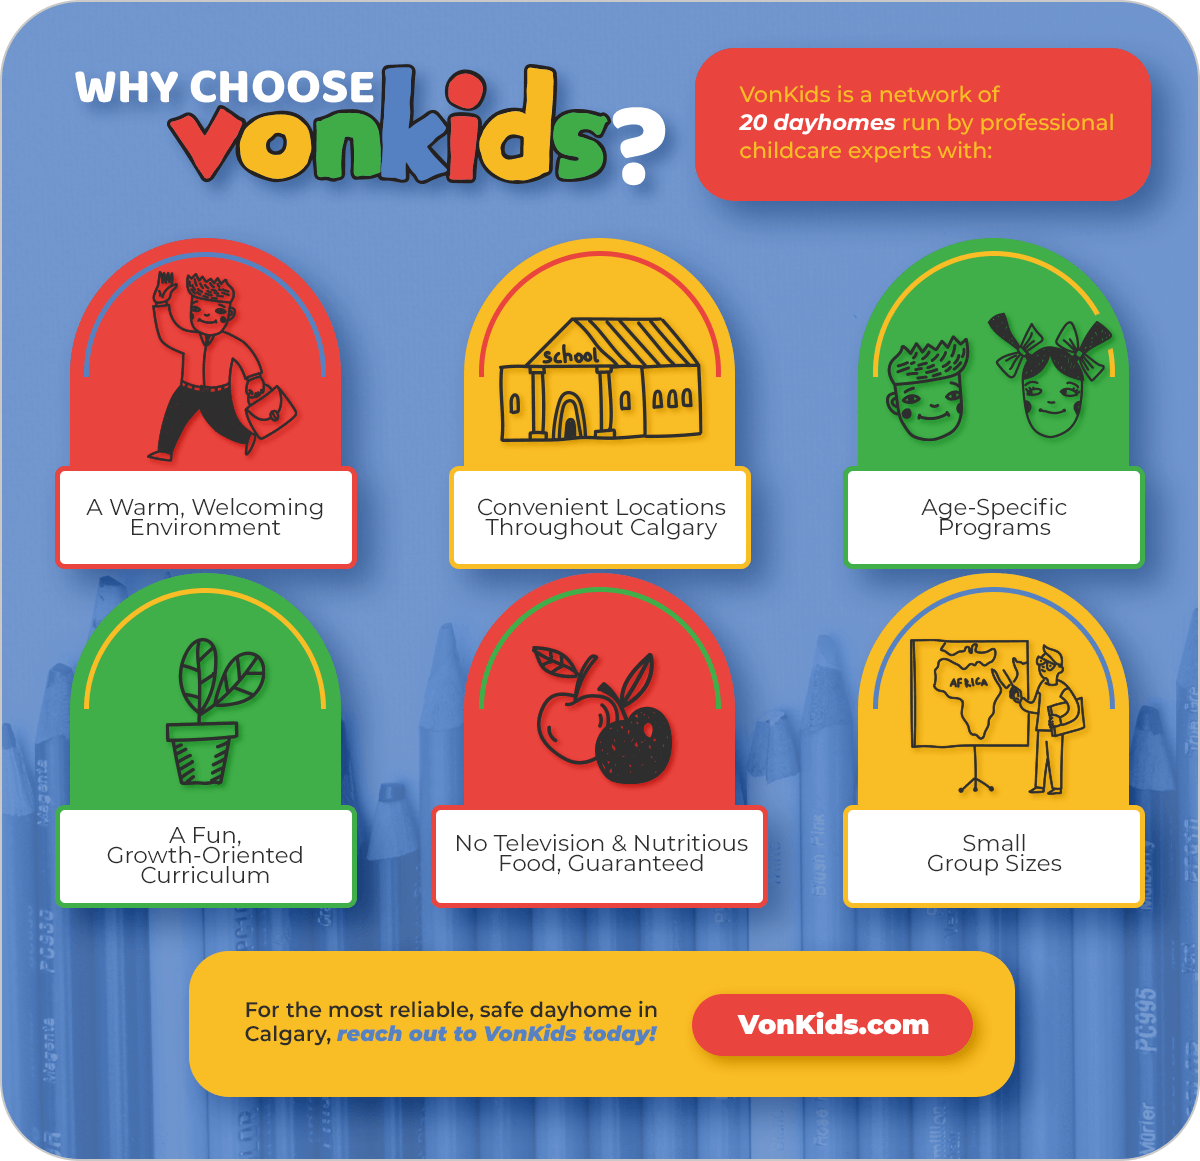 Why-Choose-VonKids-Infographic-60392f3ba6a98.png